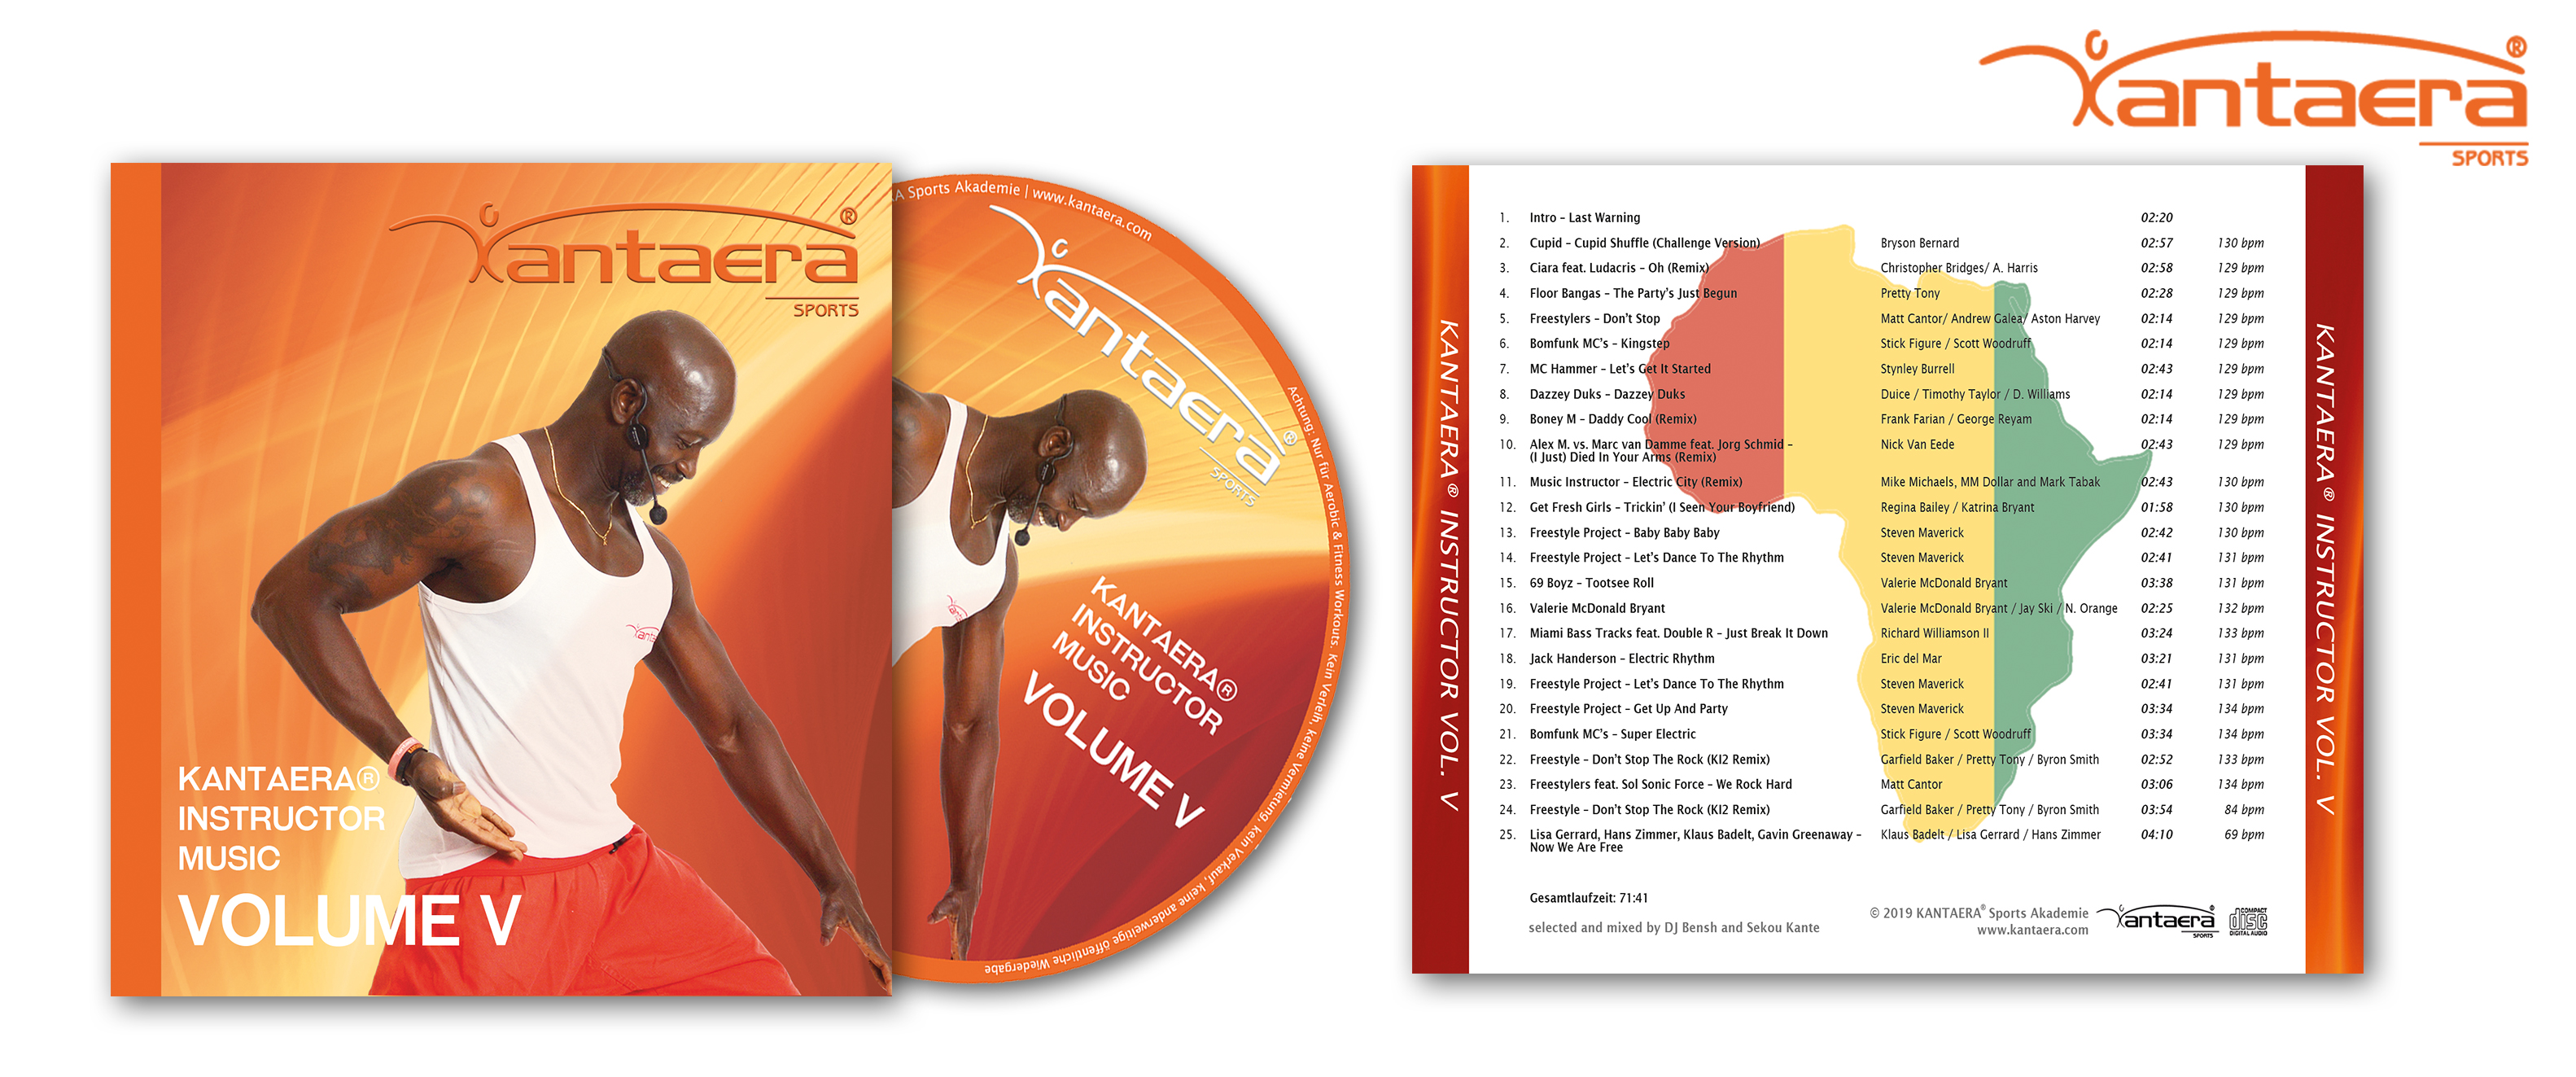 (Deutsch) NEU !!!!!! KANTAERA Instructor Music VOL. 5 als Audio CD